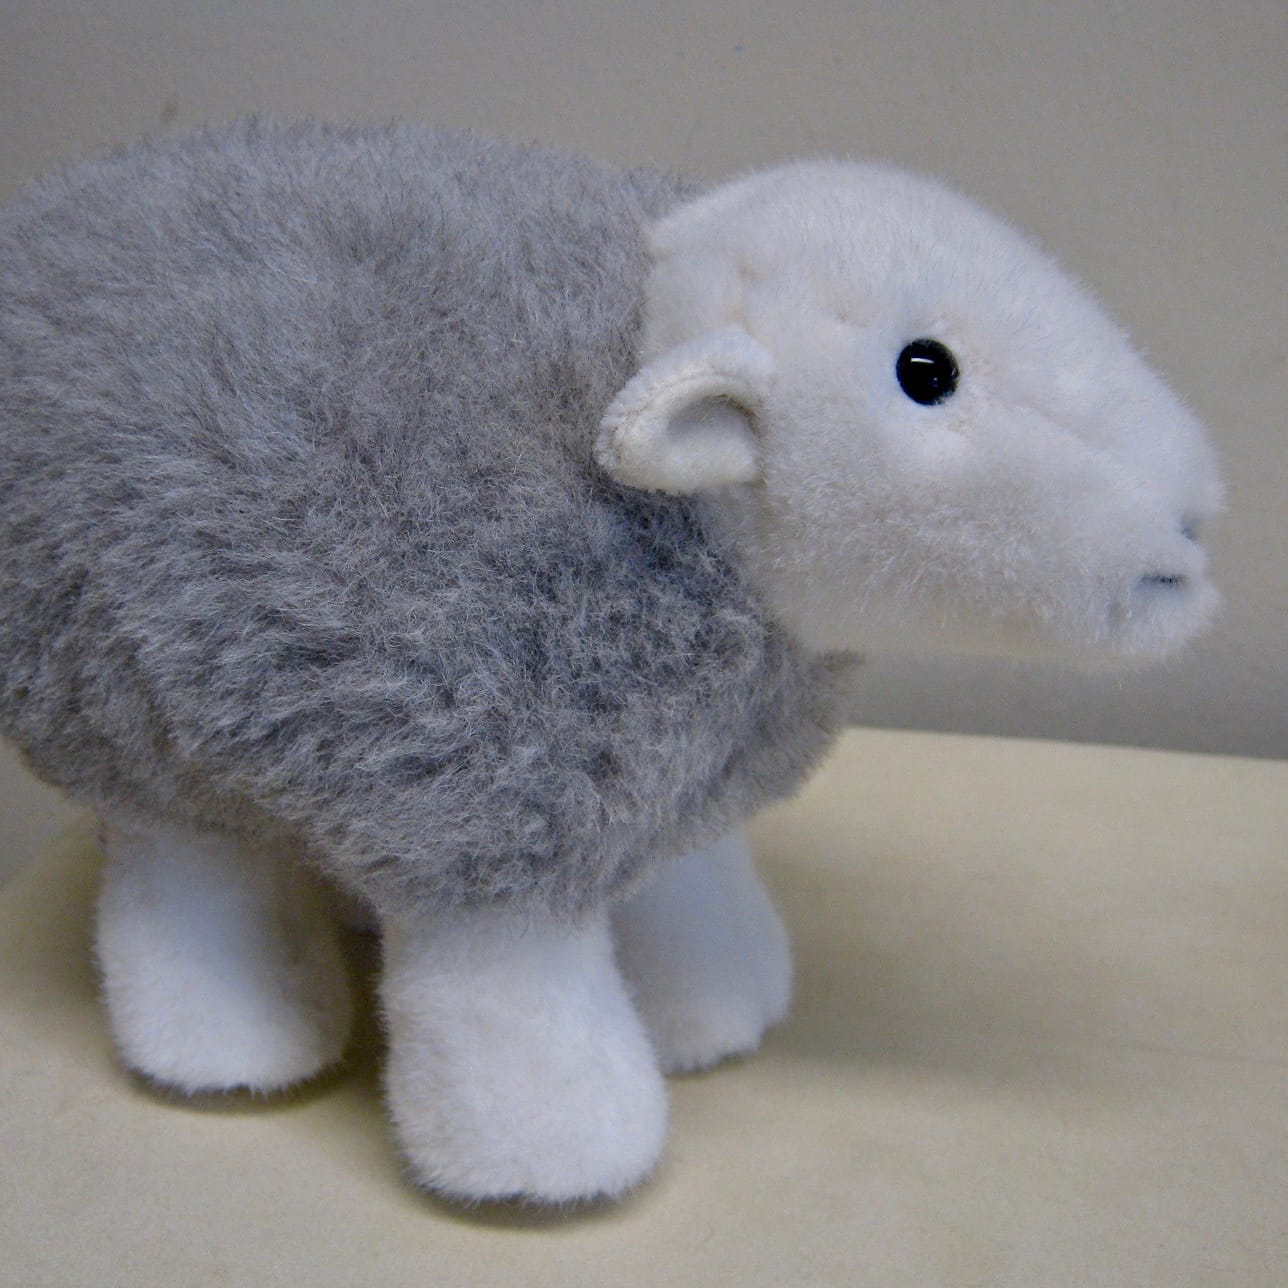 Bigger prototype of the original My Herdy, side view